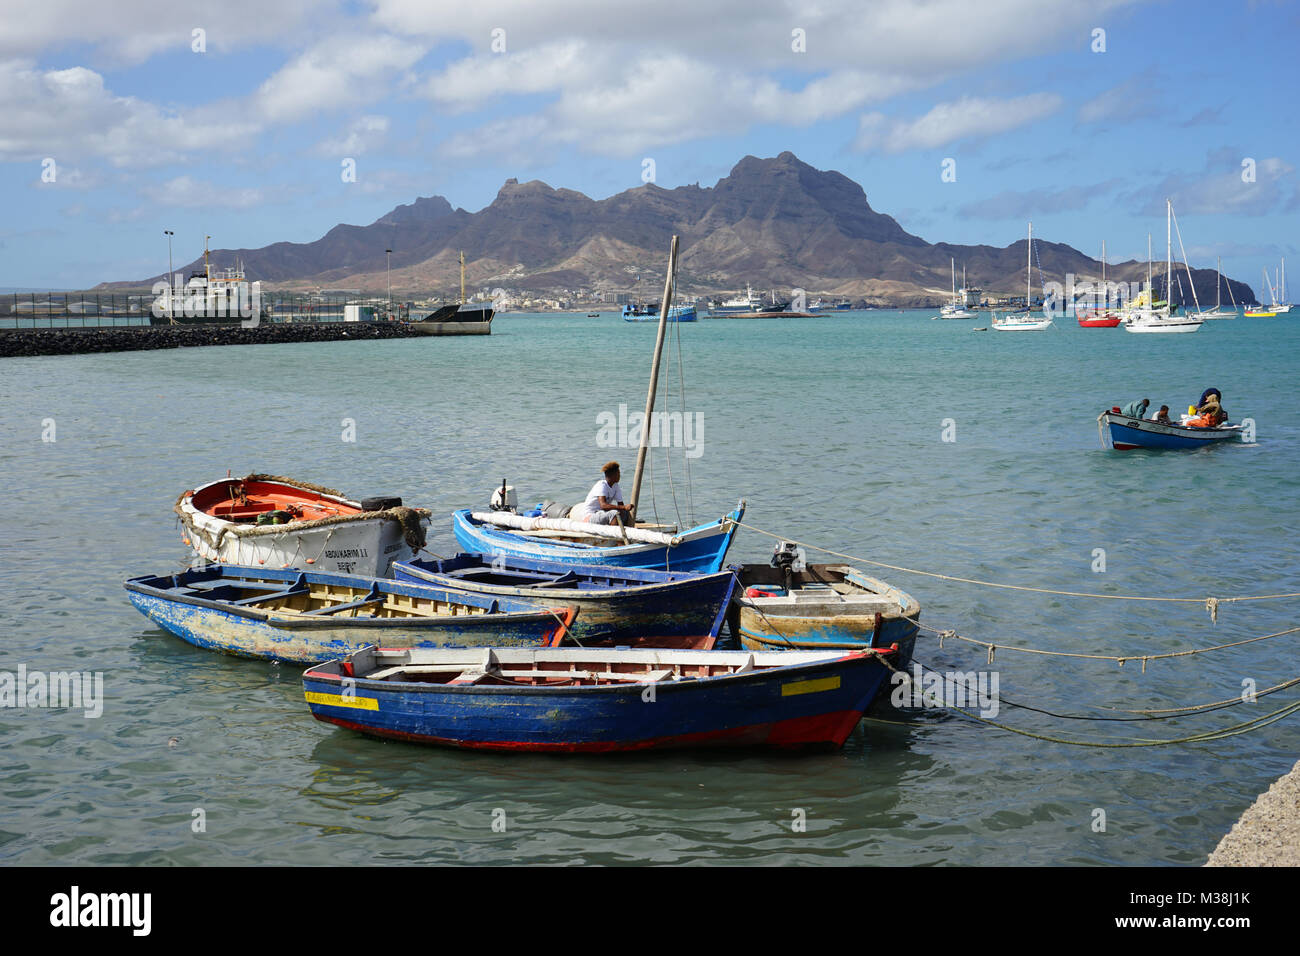 Fishing Boats in Mindelo, Cape Verde Stock Photo